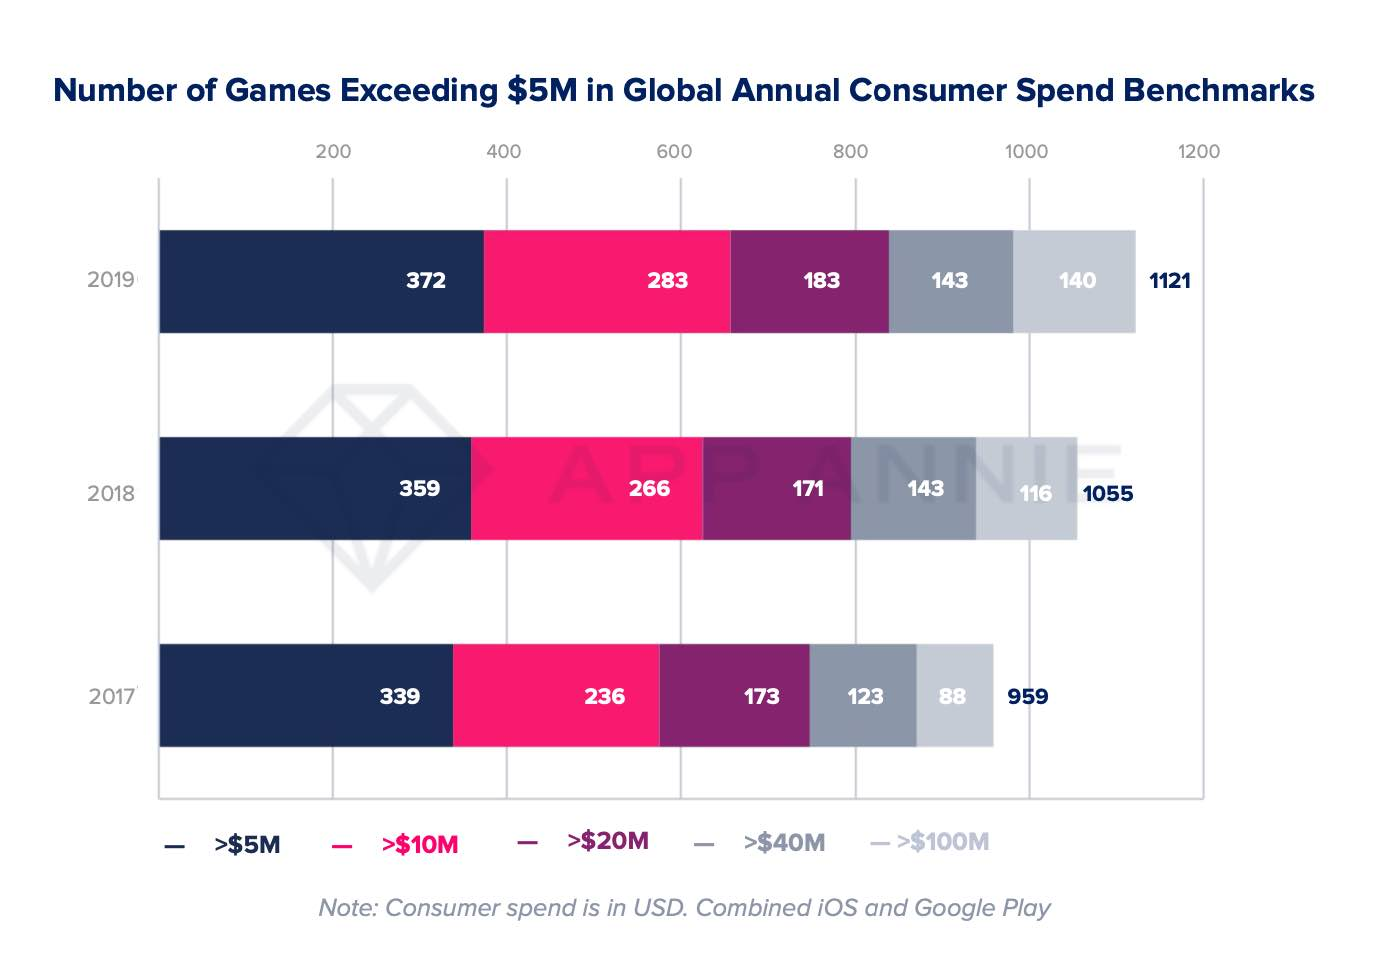 Number of games with more than $5M in Annual Consumer Spend